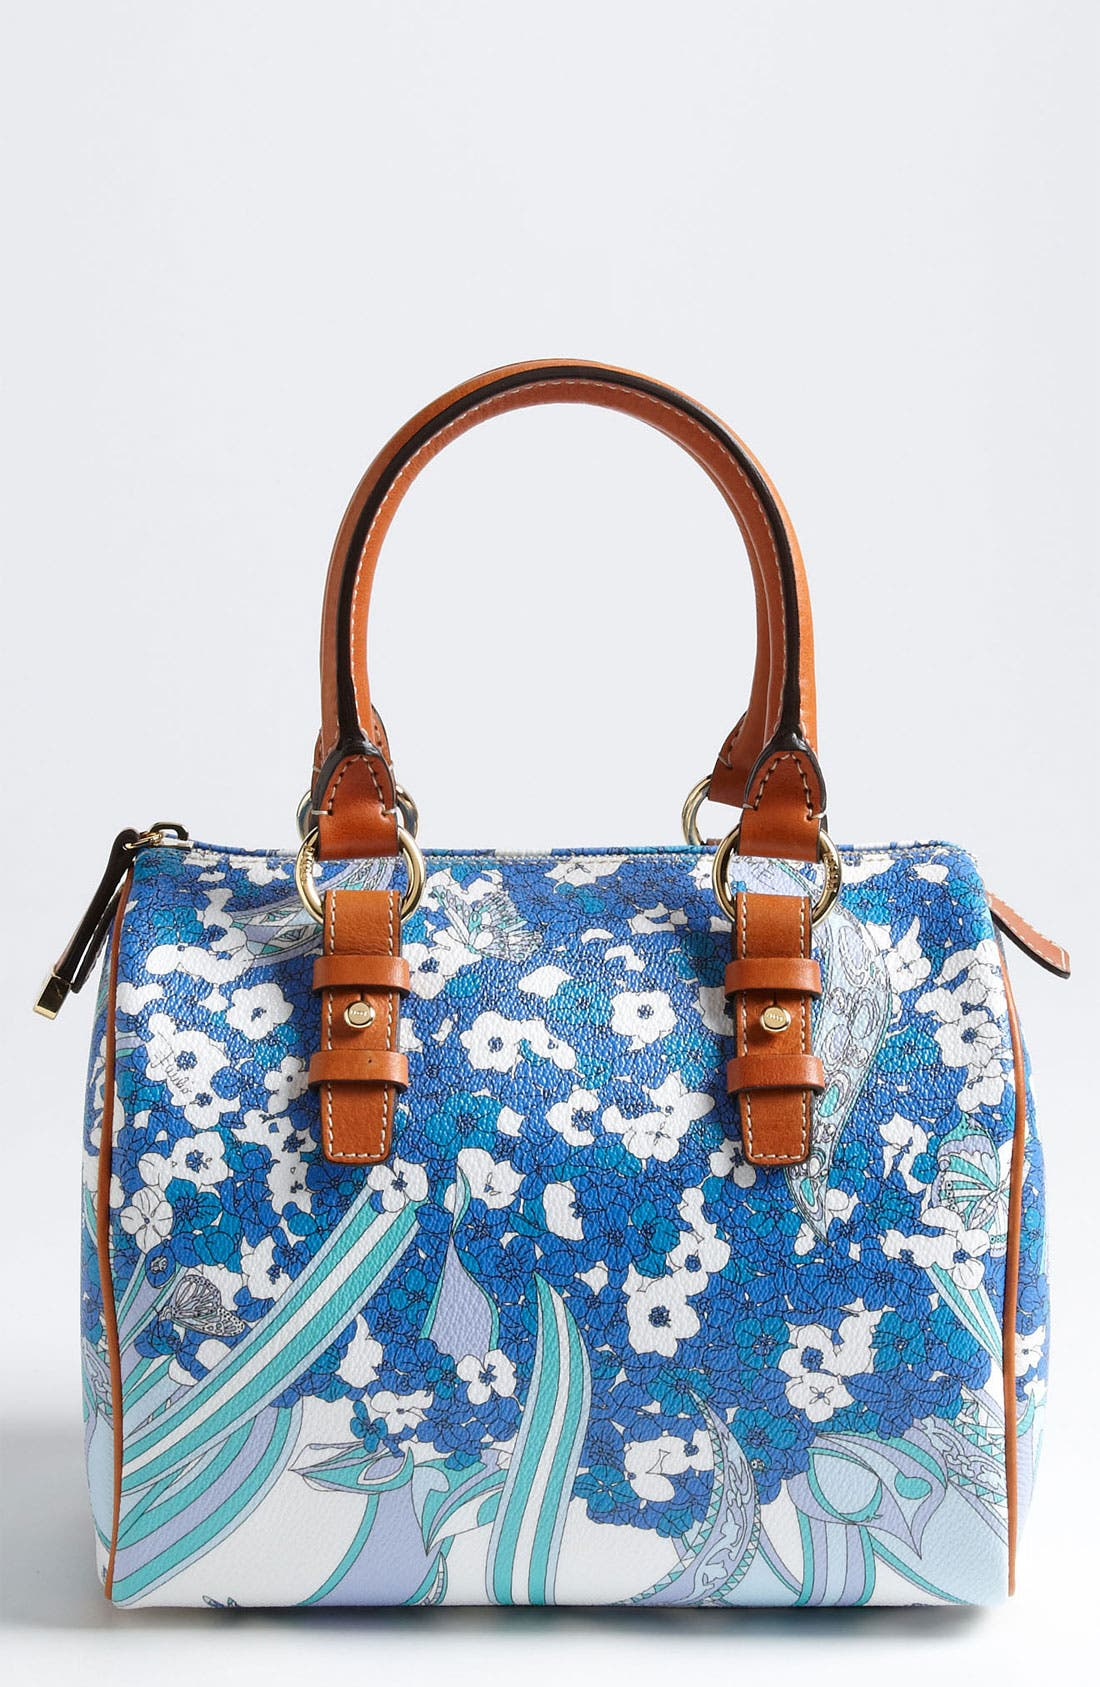 Main Image - Emilio Pucci 'Small' Boston Bag